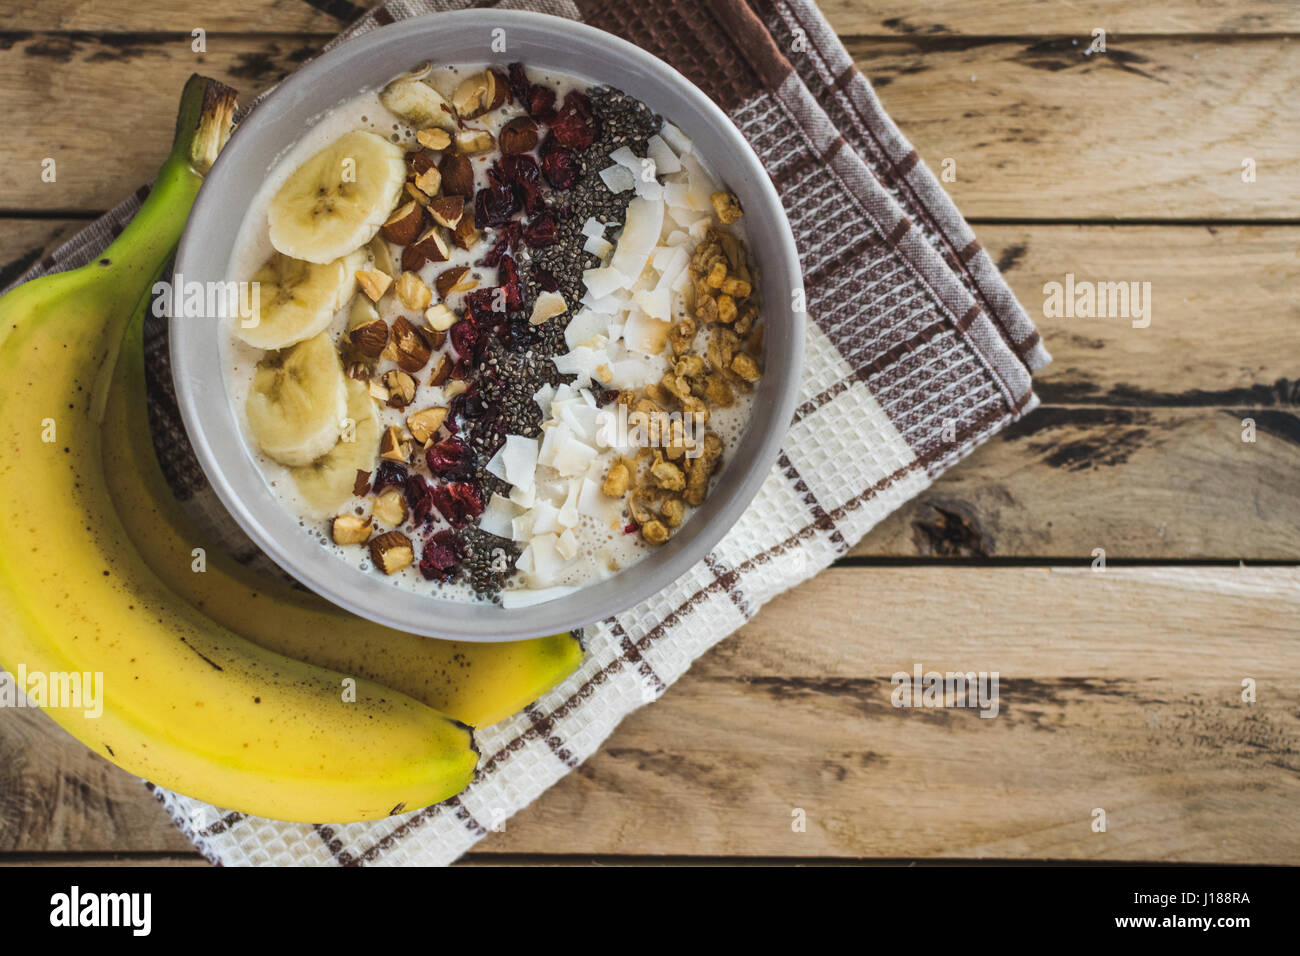 Oatmeal with bananas, cranberry, chia seeds, coconut shreds, almonds. Healthy breakfast concept. Rustic wooden background. - Stock Image